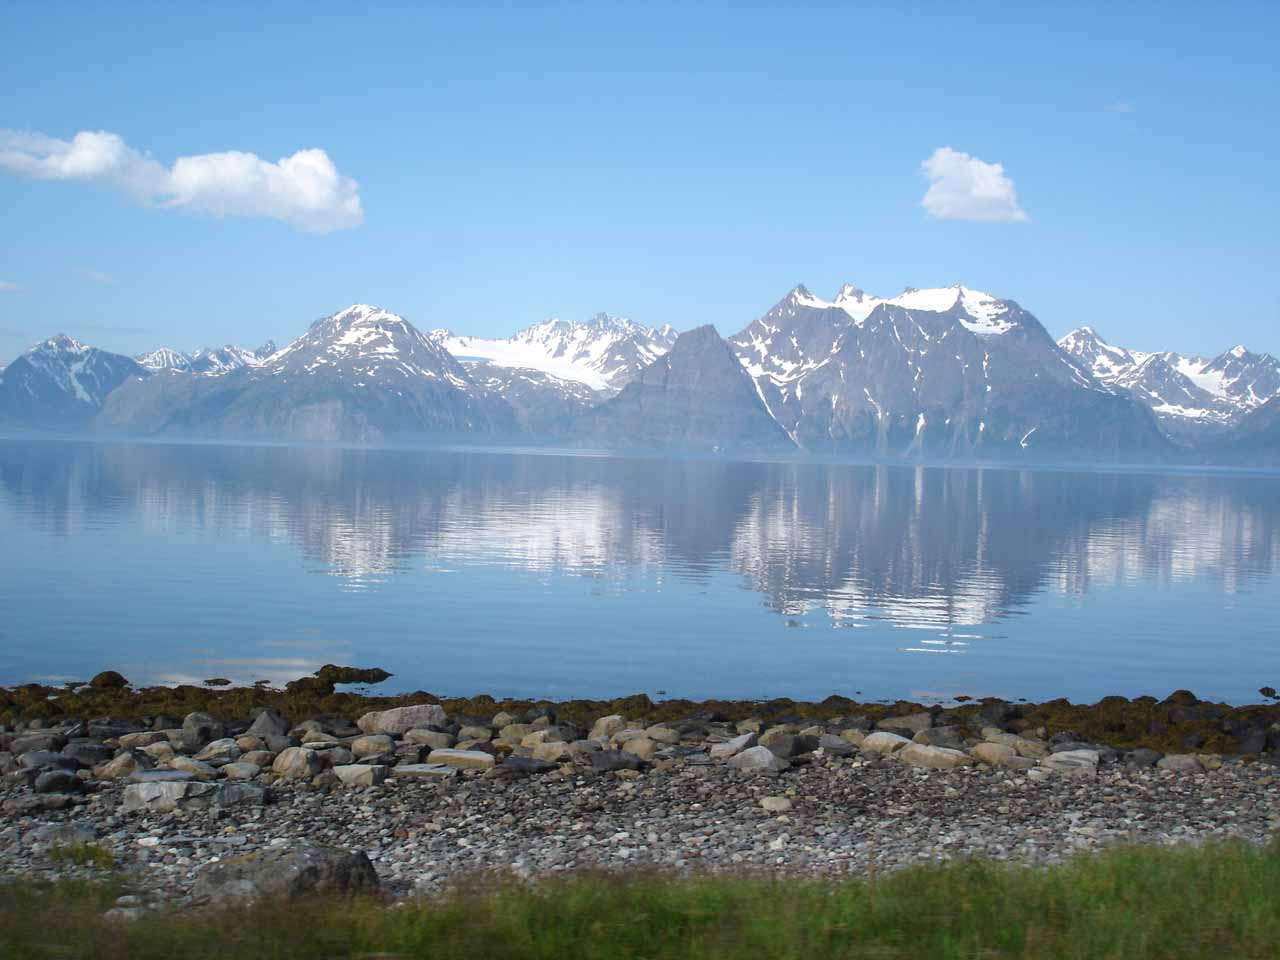 After visiting Målselvfossen, we continued going north on the E6 when we started to see the impressive Lyngen Alps across the channel alongside the road